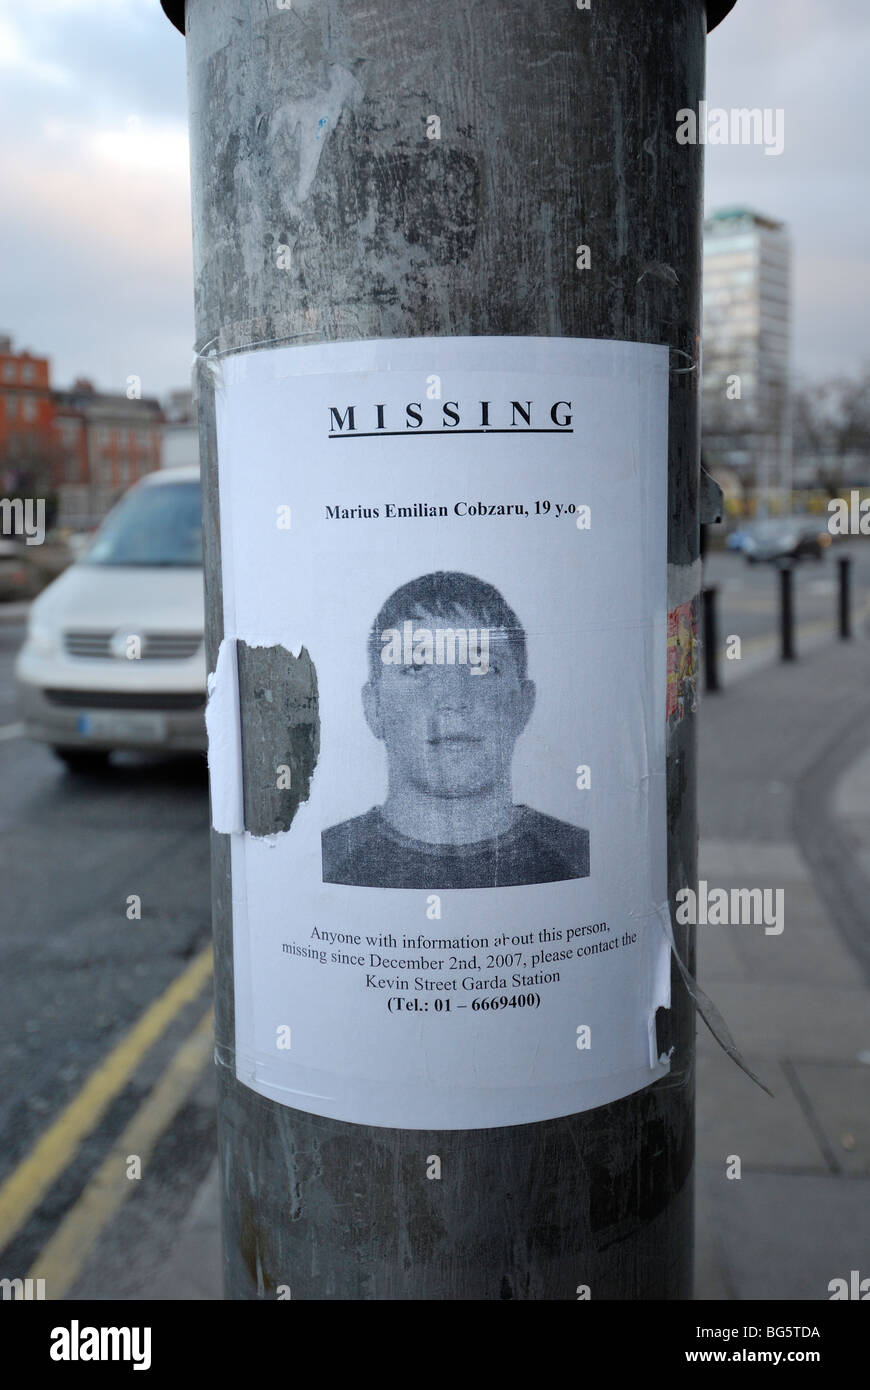 Missing Person Poster On Lamp Post In Dublin Ireland  Missing Person Posters